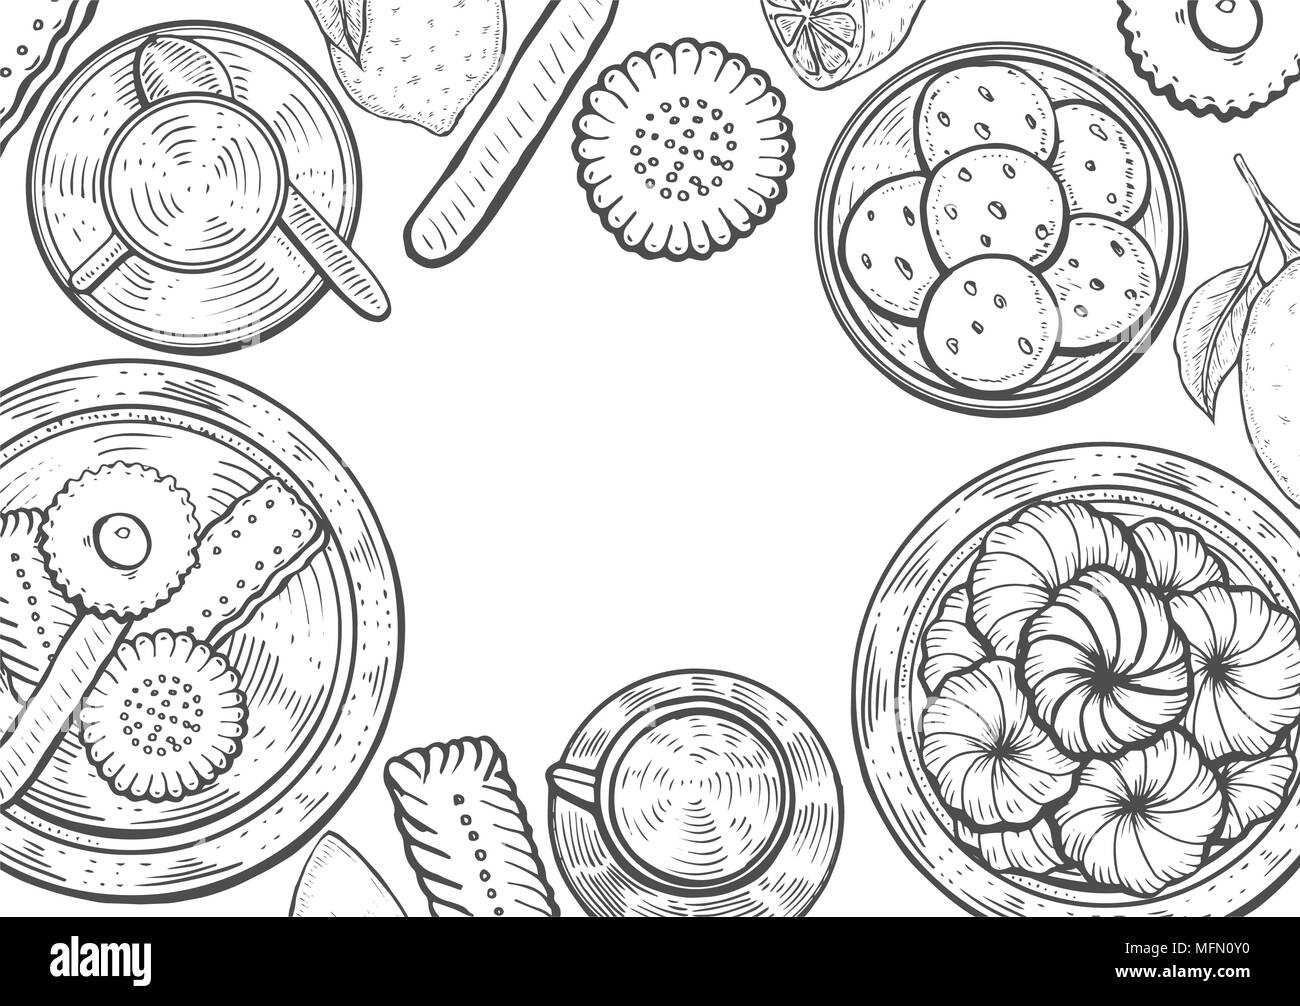 Hand drawn Food menu background. Middle eastern food. Oriental sweets vector illustration. Linear graphic. Monochrom vector illustration. - Stock Image